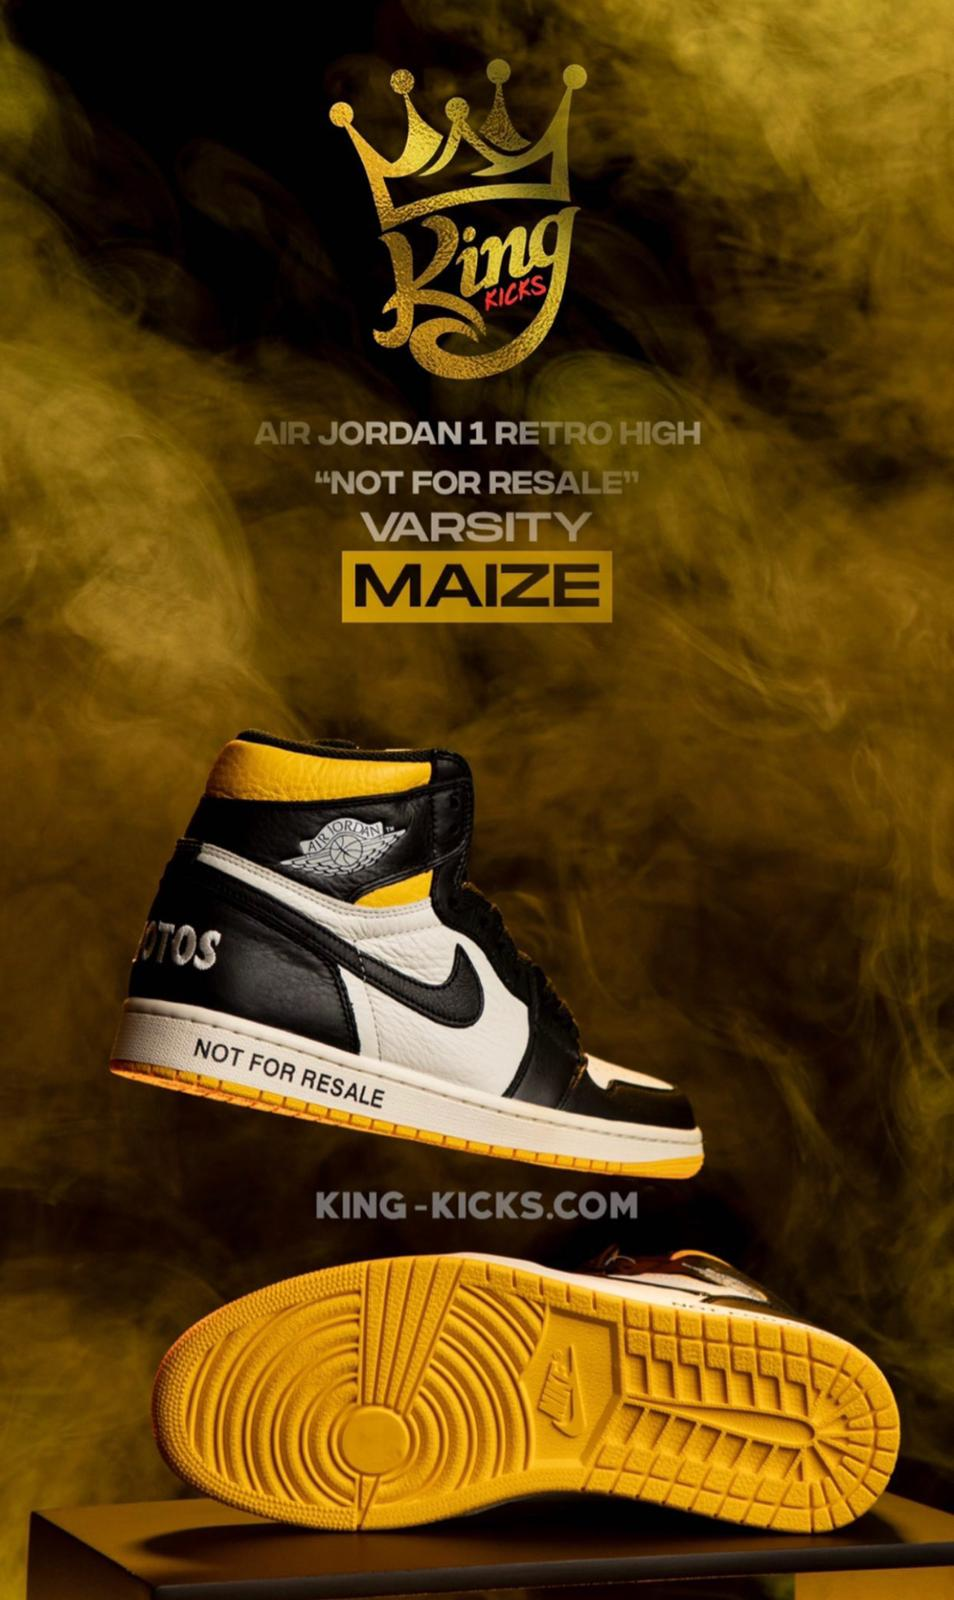 KingKicks: how this online shoe store grew exponentially amidst the pandemic